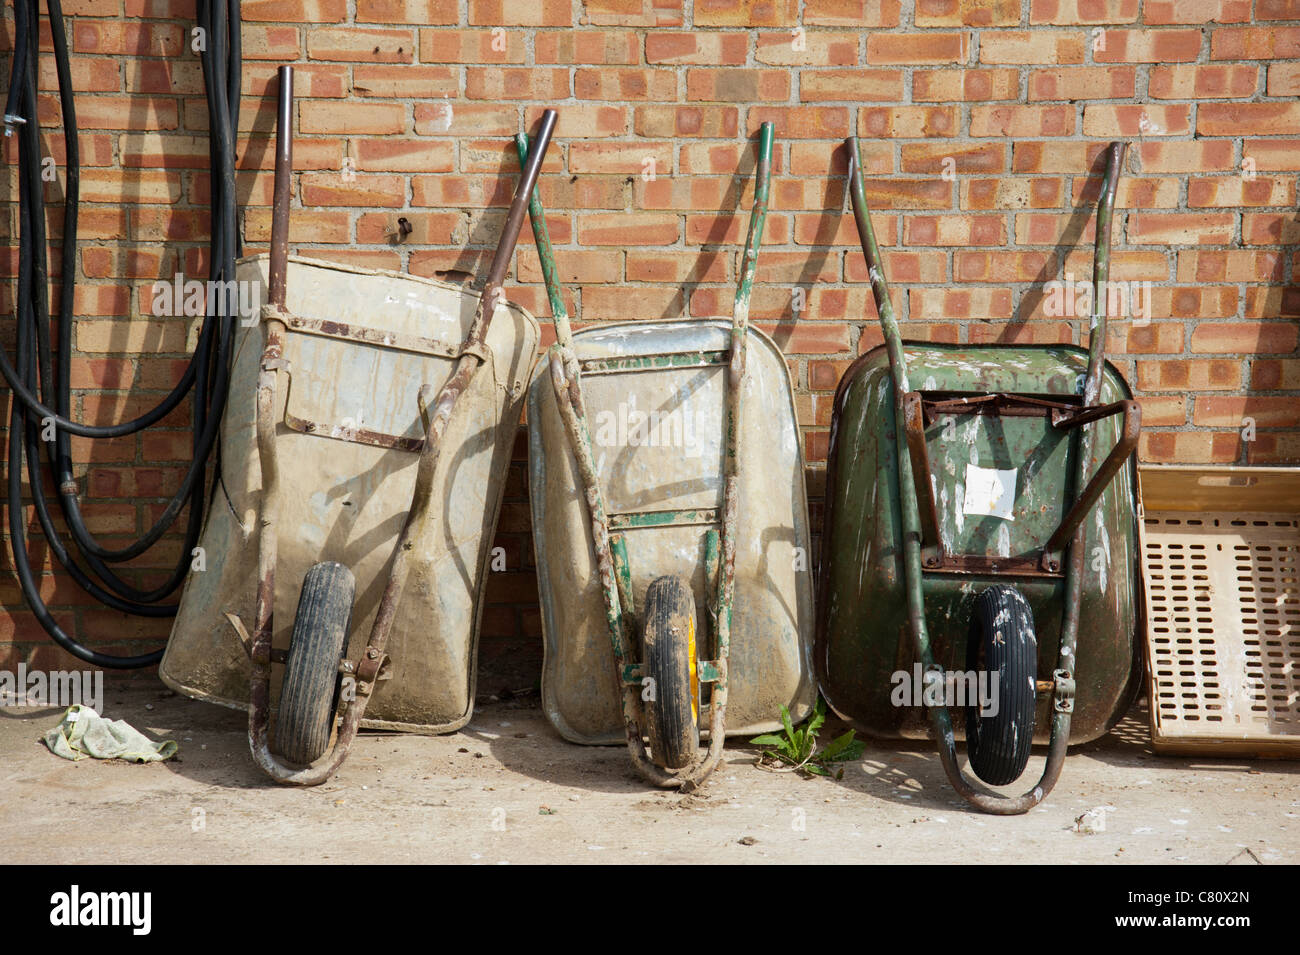 Three wheelbarrows leaning against a brick wall in a farmyard - Stock Image